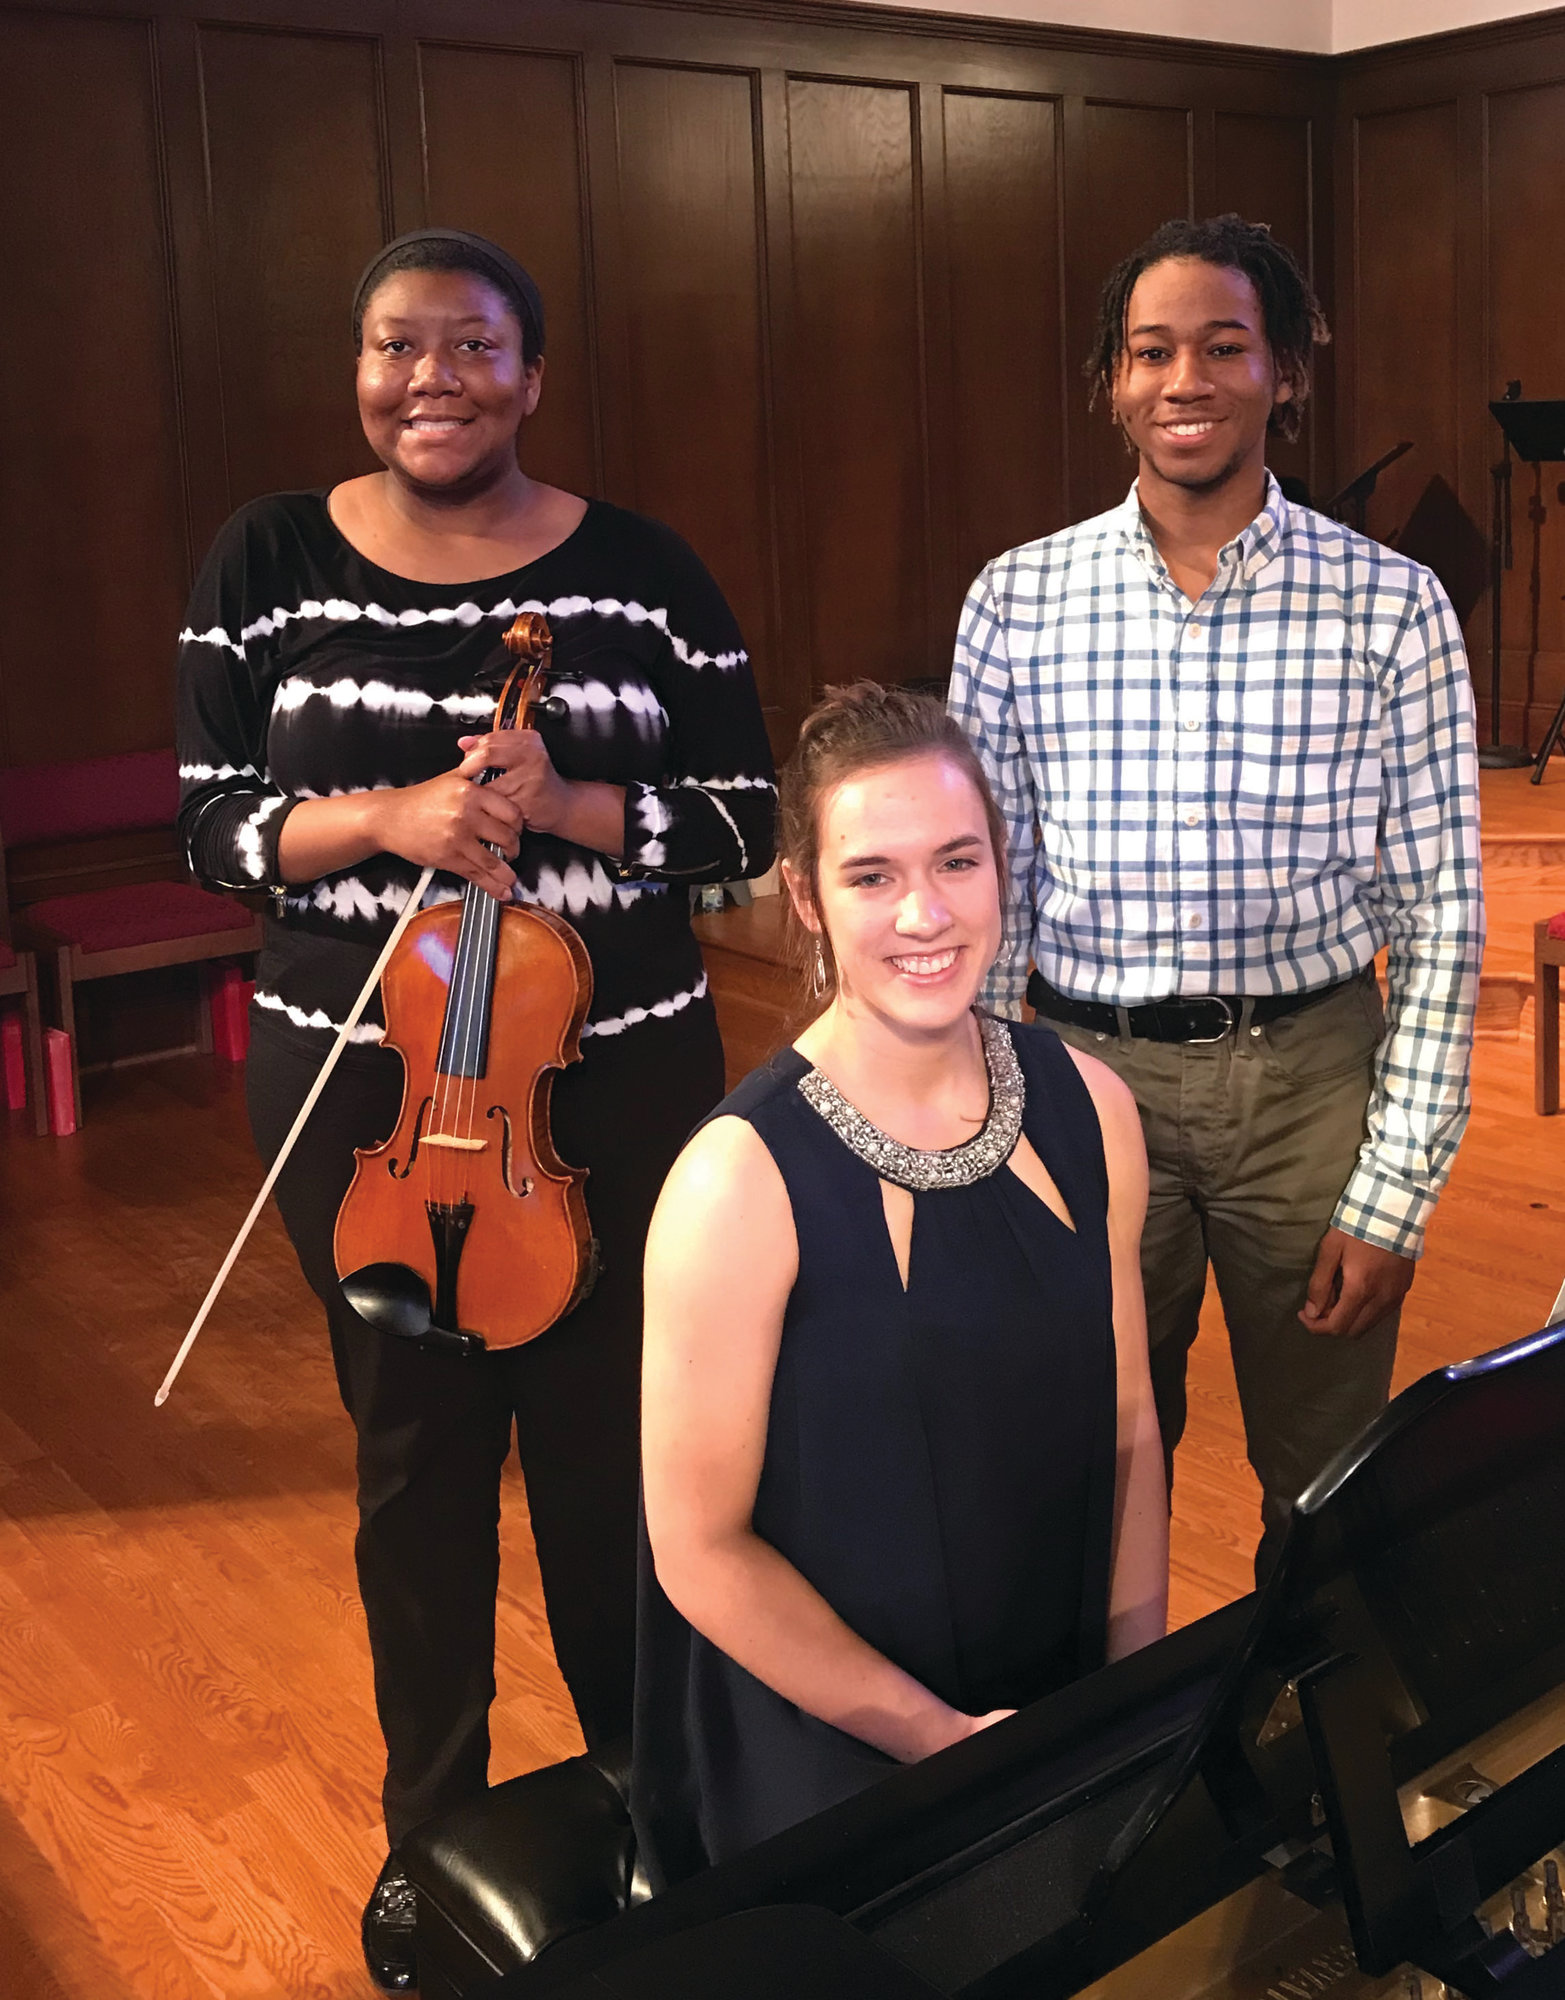 PHOTO PROVIDED  Winners of the 2019 Woman's Afternoon Music Club scholarships are, from left: Deja Lint, Susanna Hutson and Josiah Johnson. Each received a $500 scholarship to further his or her music studies.